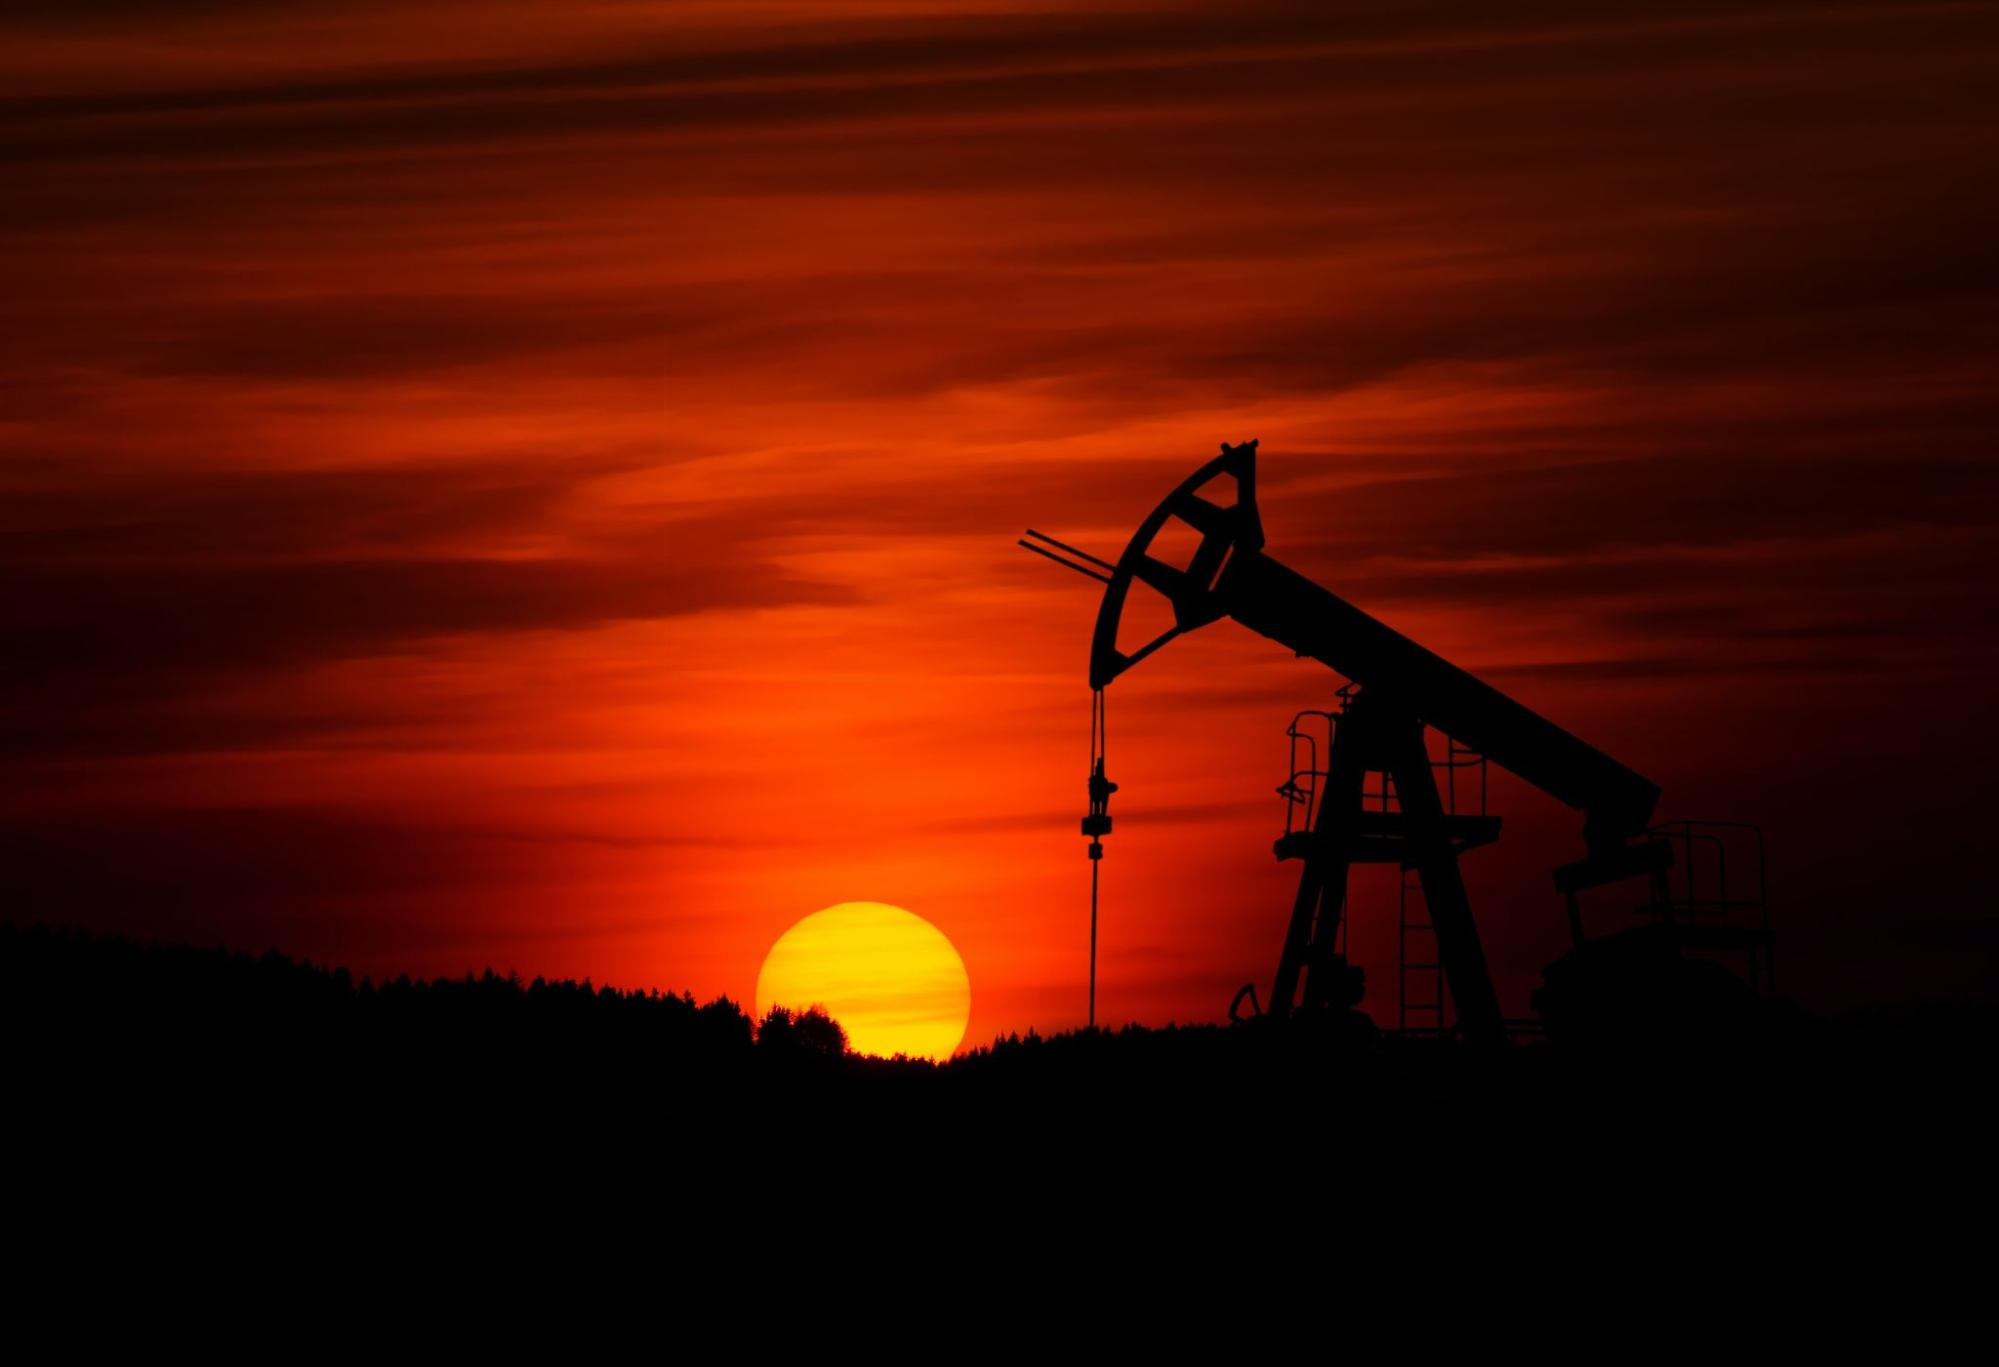 Canada benefits from the hydrocarbon sector